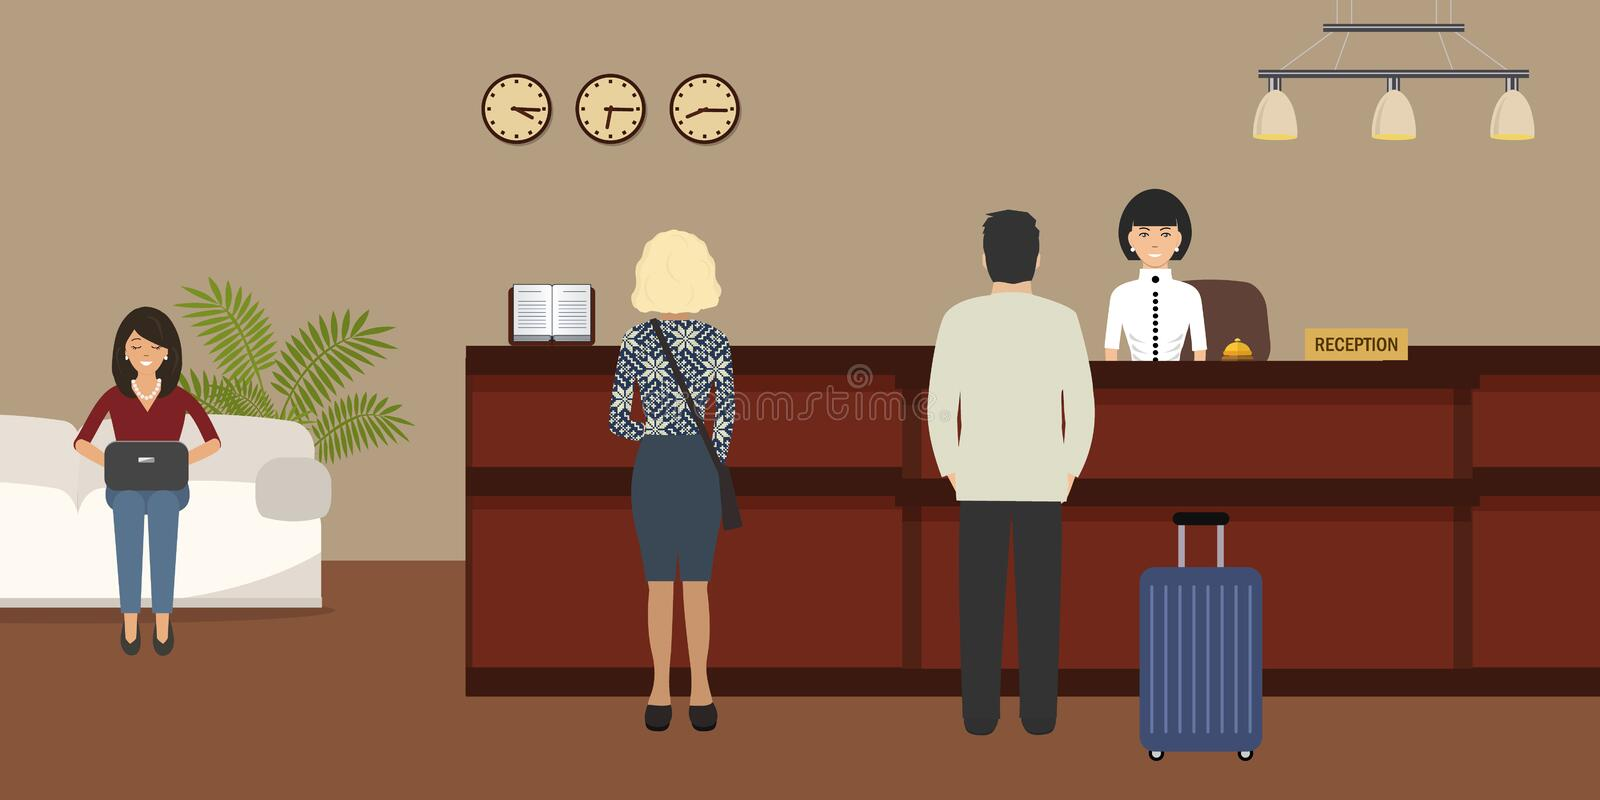 Hotel reception. Young woman receptionist stands at reception desk. There are also visitors here. Travel, hospitality, hotel booking concept. Vector image royalty free illustration